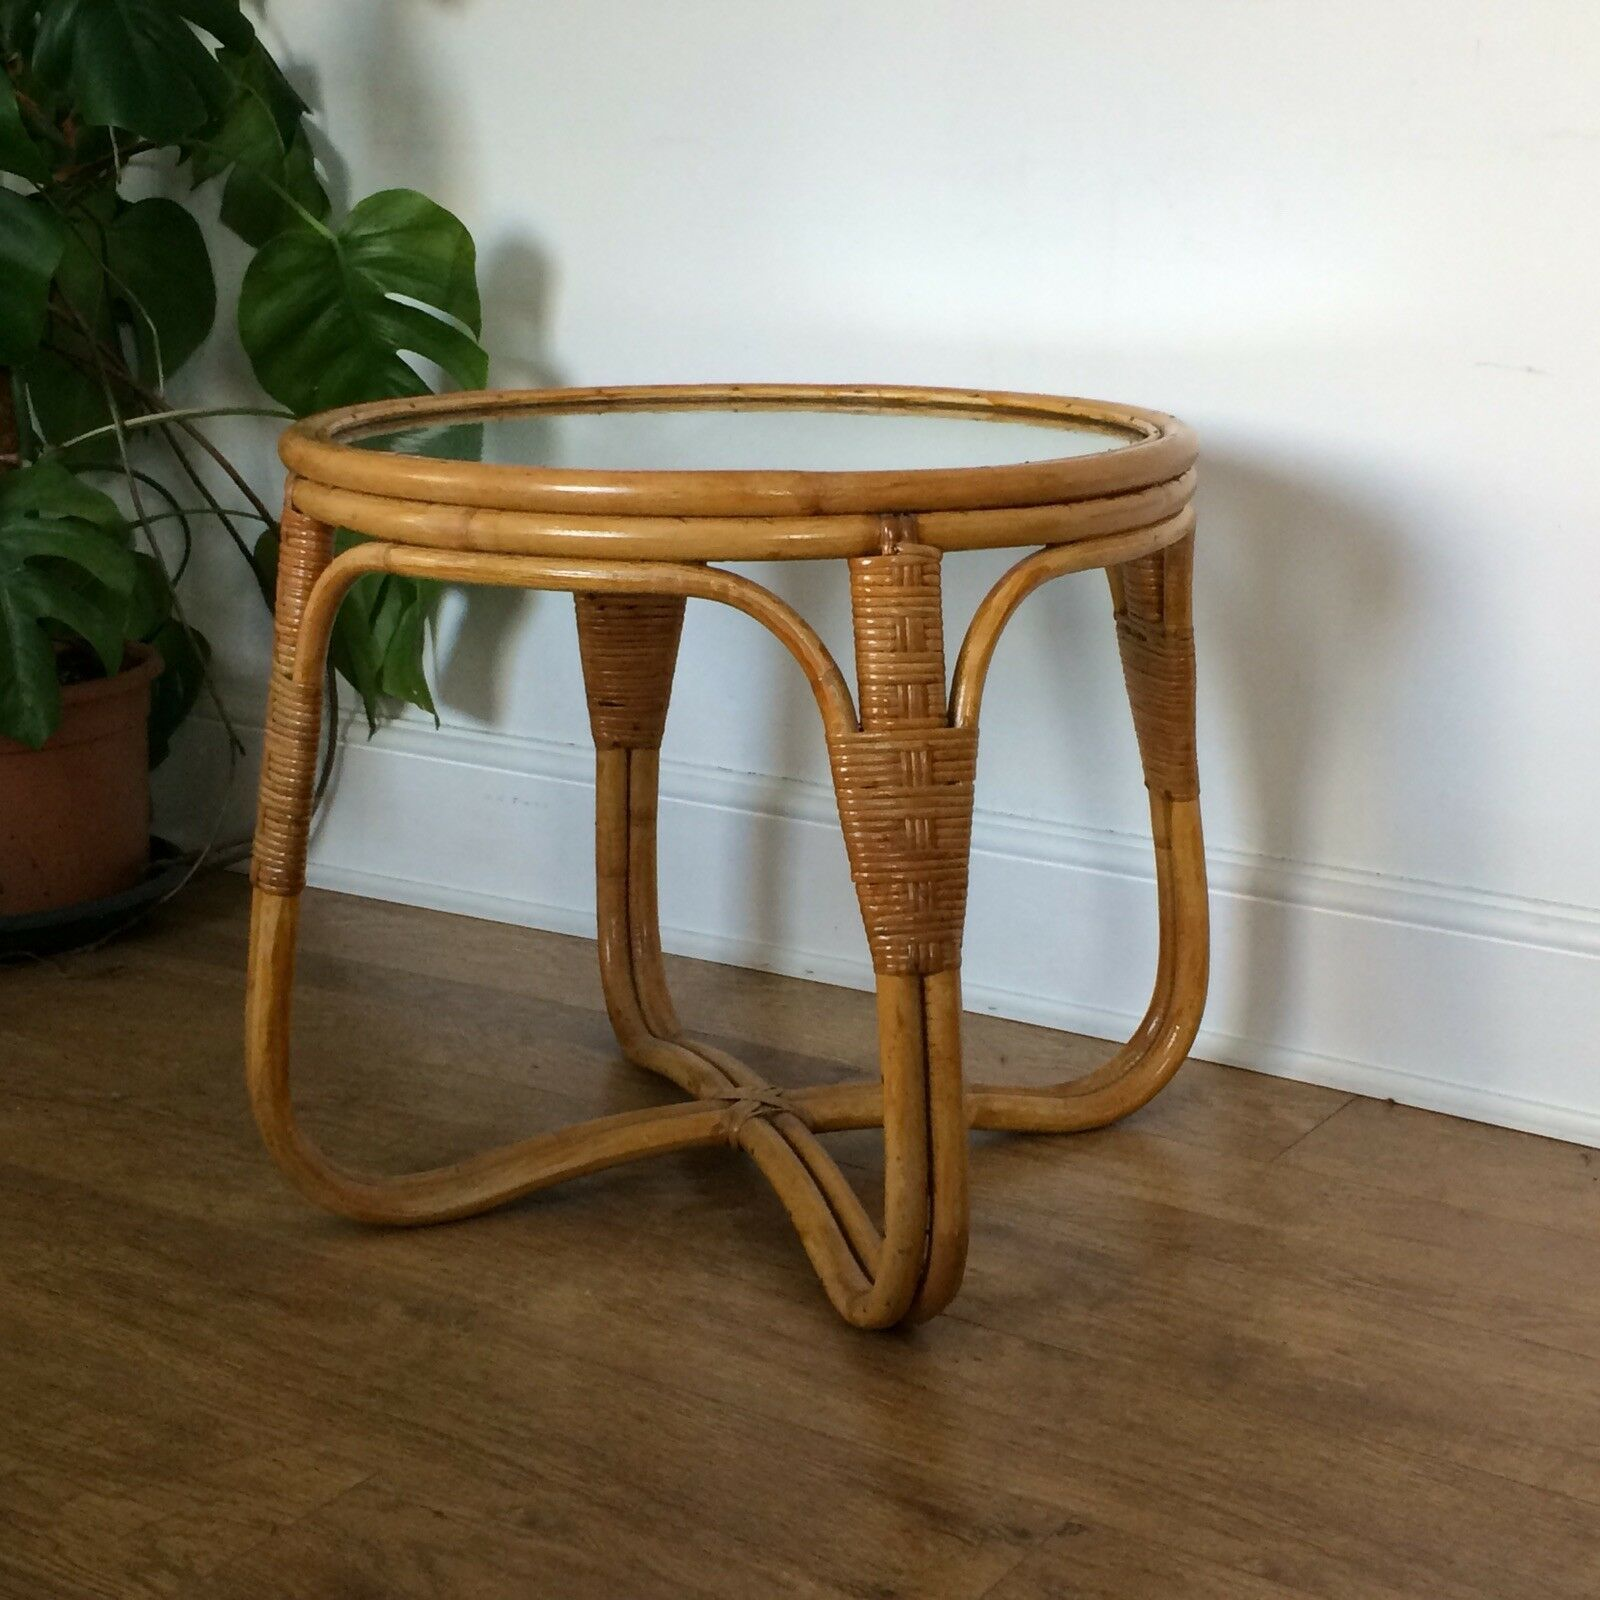 Vintage 1960s 1970s Angraves Invincible Bamboo Rattan Wicker Round Side Table Side Table Round Side Table Rattan